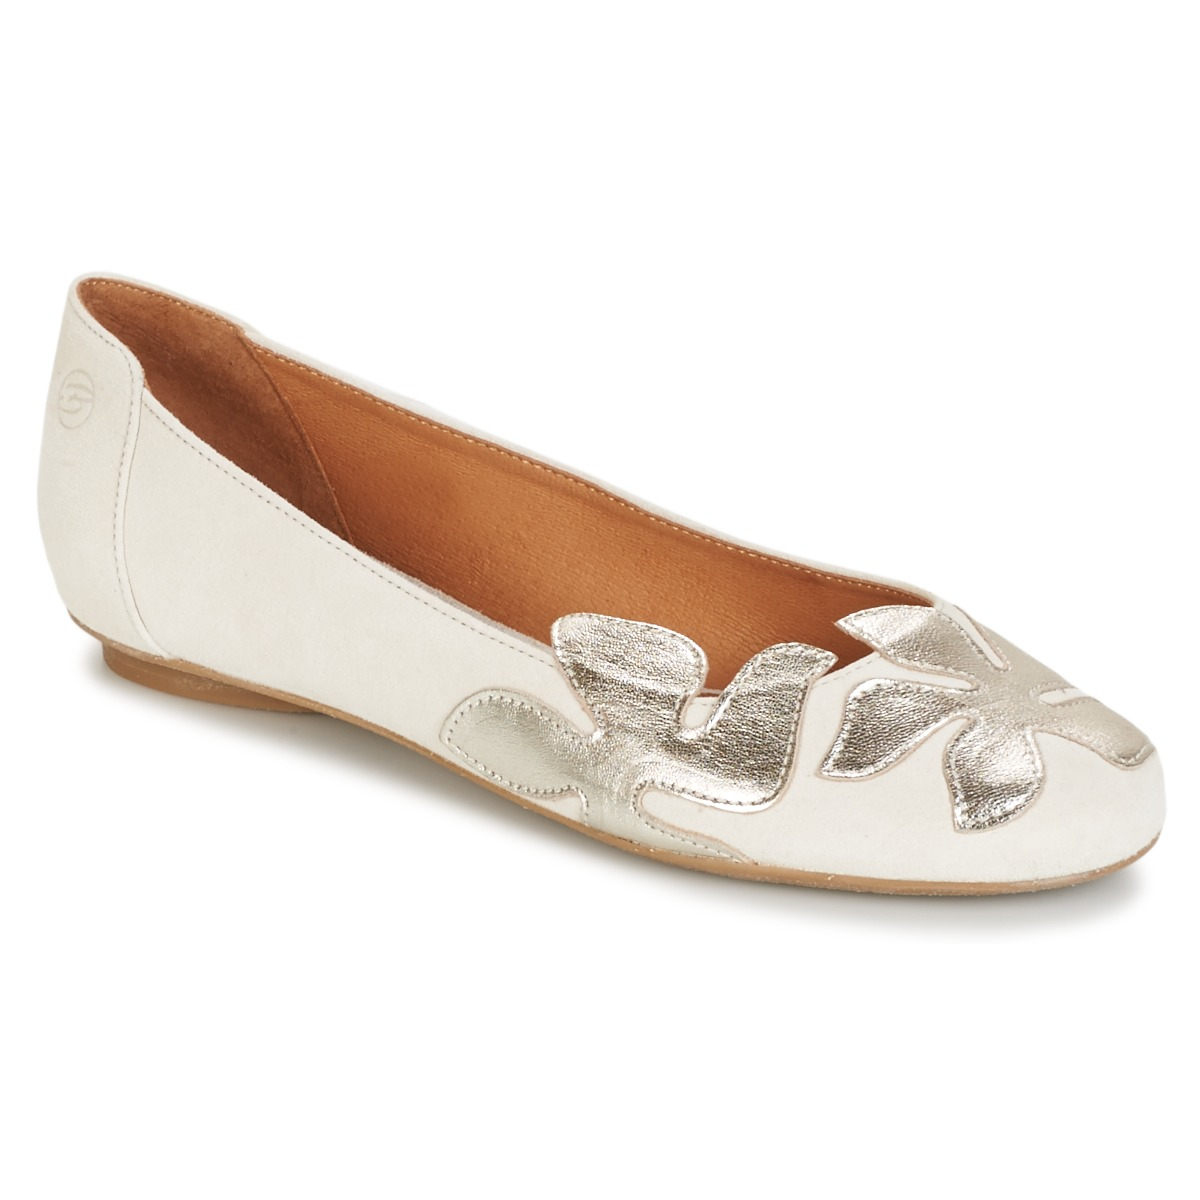 Ballerines Betty London ERUNE Blanc / Argent